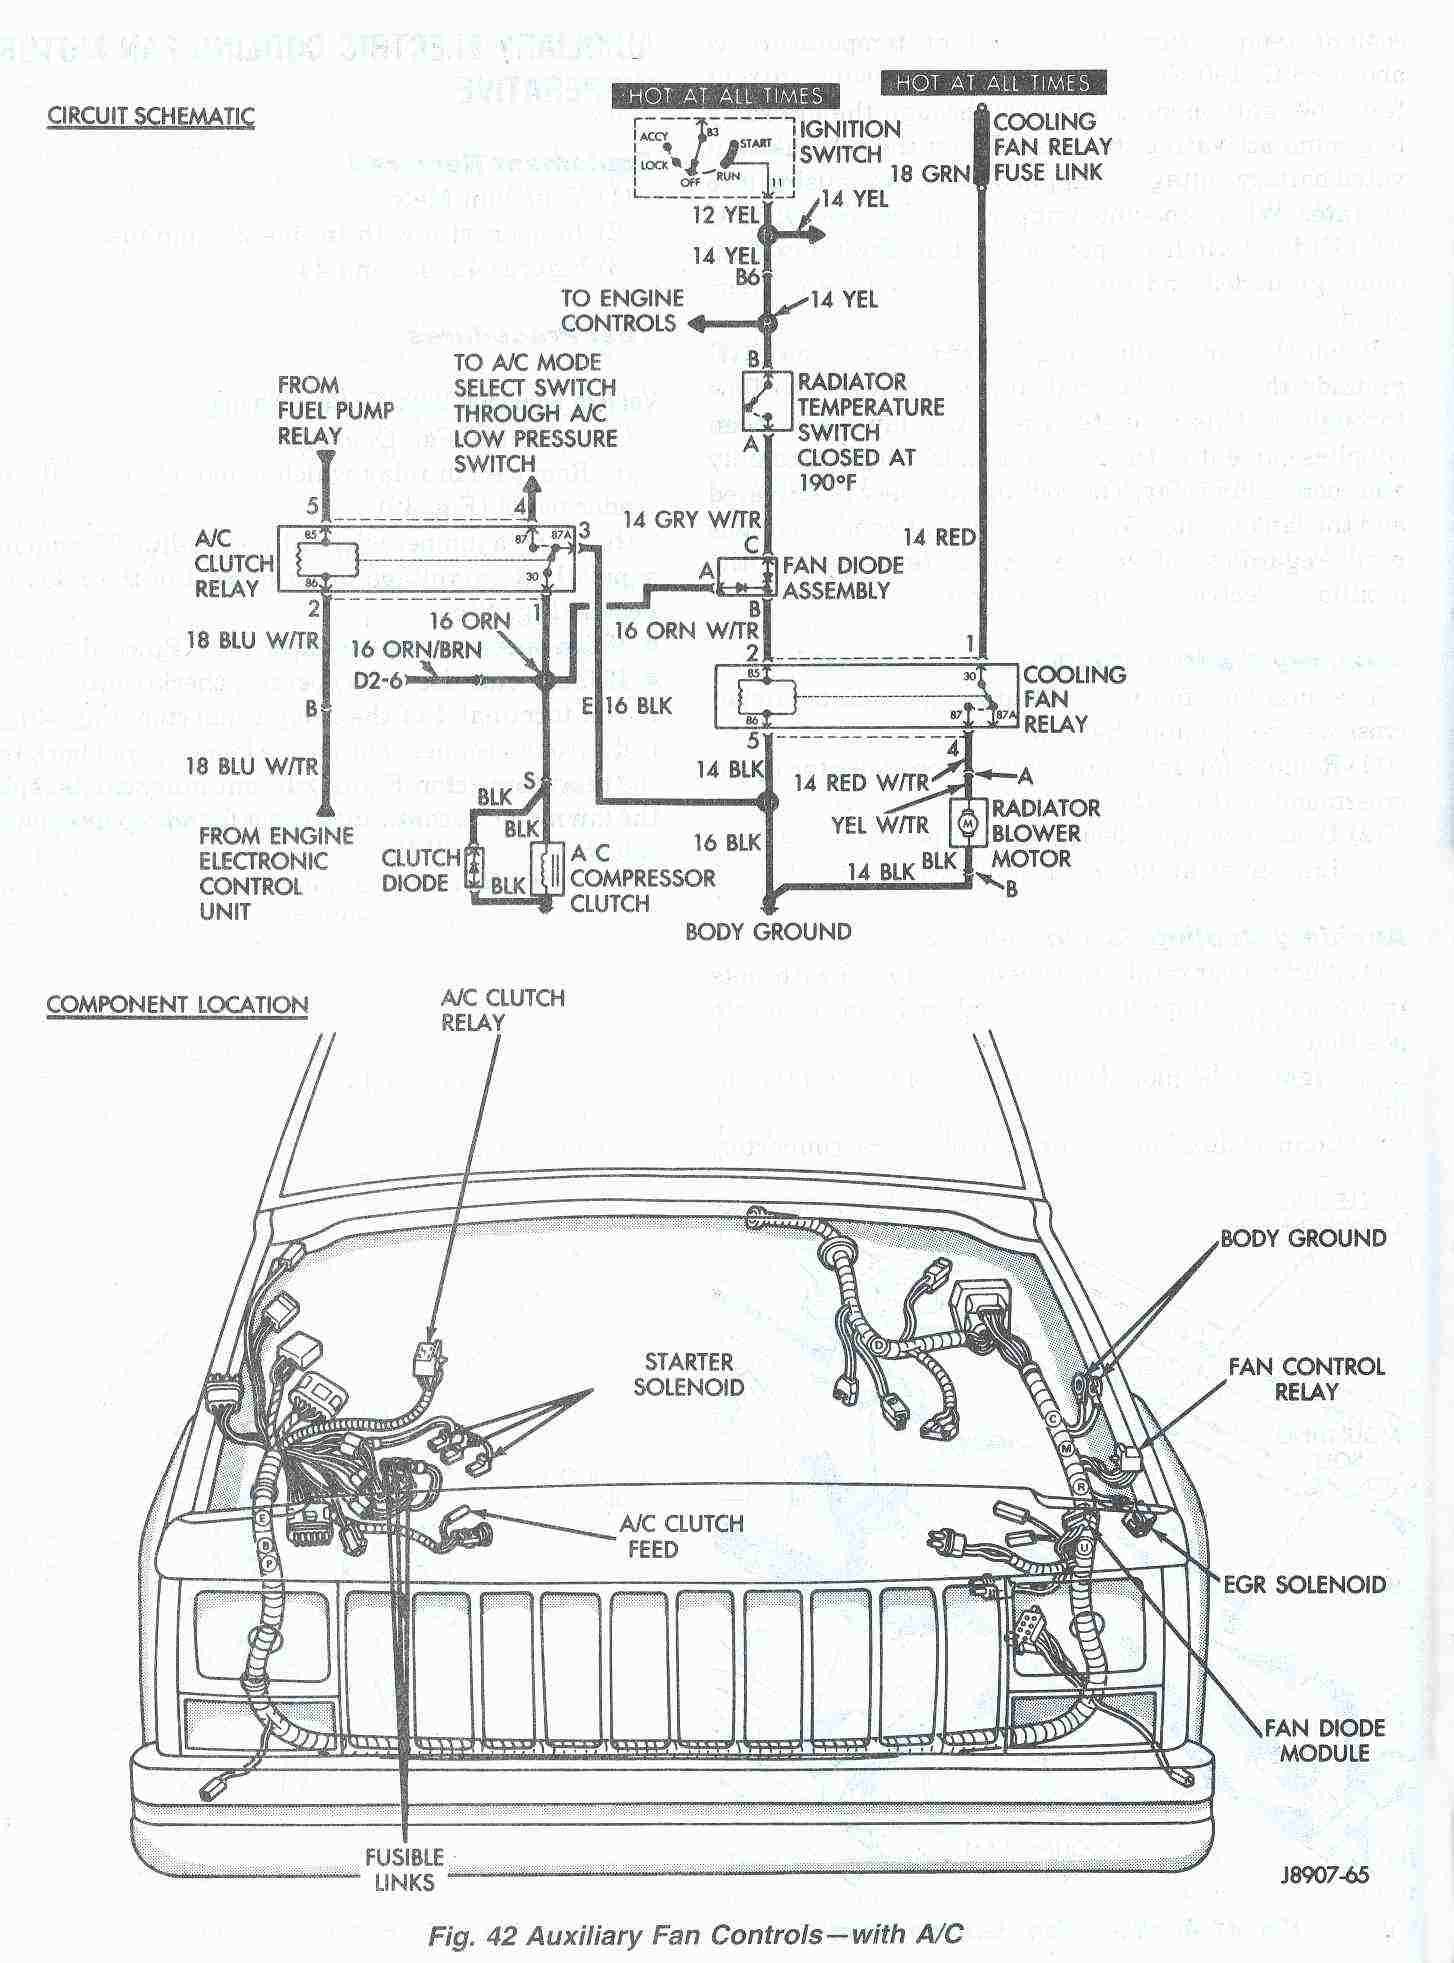 e8c83109bad6c41d377df8c1cb7a8dc4 auxiliary_fan_schematic_fig_42 jpg (1454�1963) cherokee diagrams 2006 jeep wrangler ac wiring diagram at webbmarketing.co